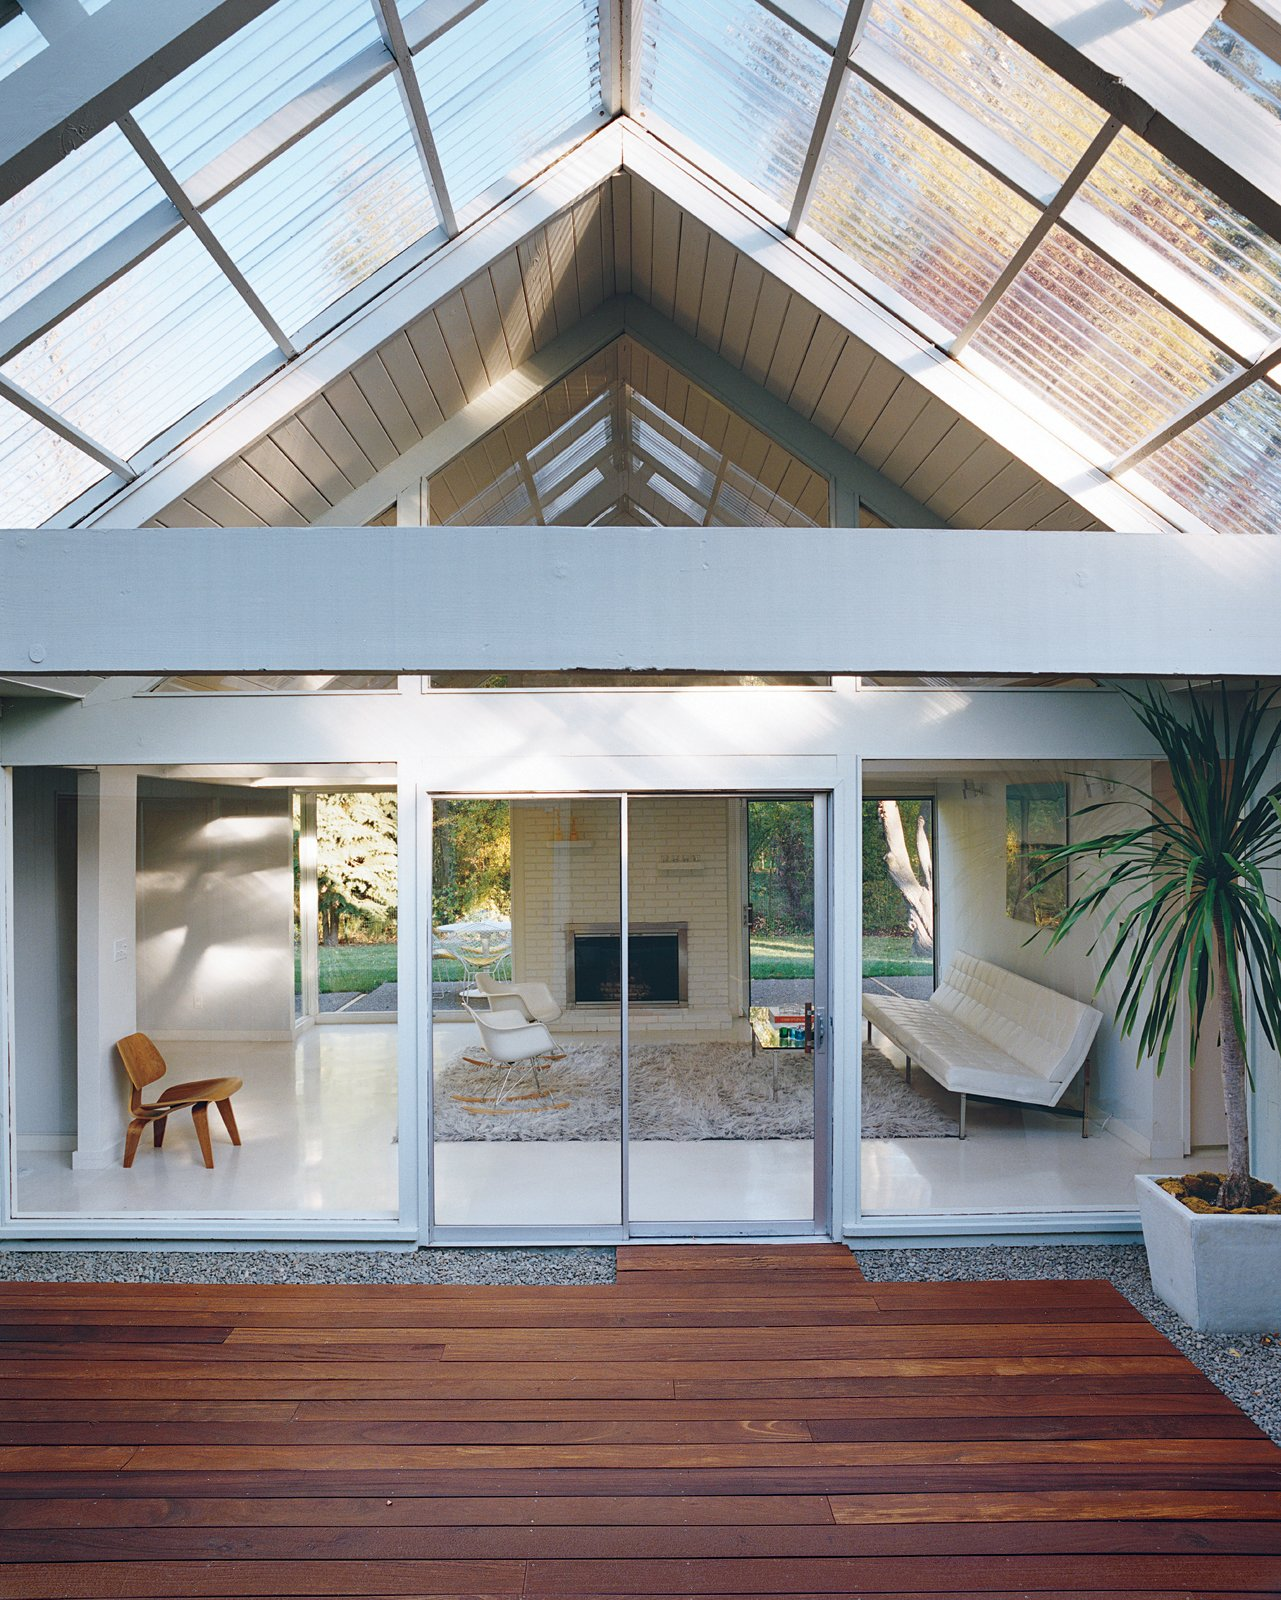 The literal and figurative centerpiece of the house is the atrium, through which light filters into the rest of the house year-round. Tagged: Outdoor, Large Patio, Porch, Deck, and Wood Patio, Porch, Deck.  Midcentury Homes by Dwell from A Mid-Century Modern Home in Southwest Portland